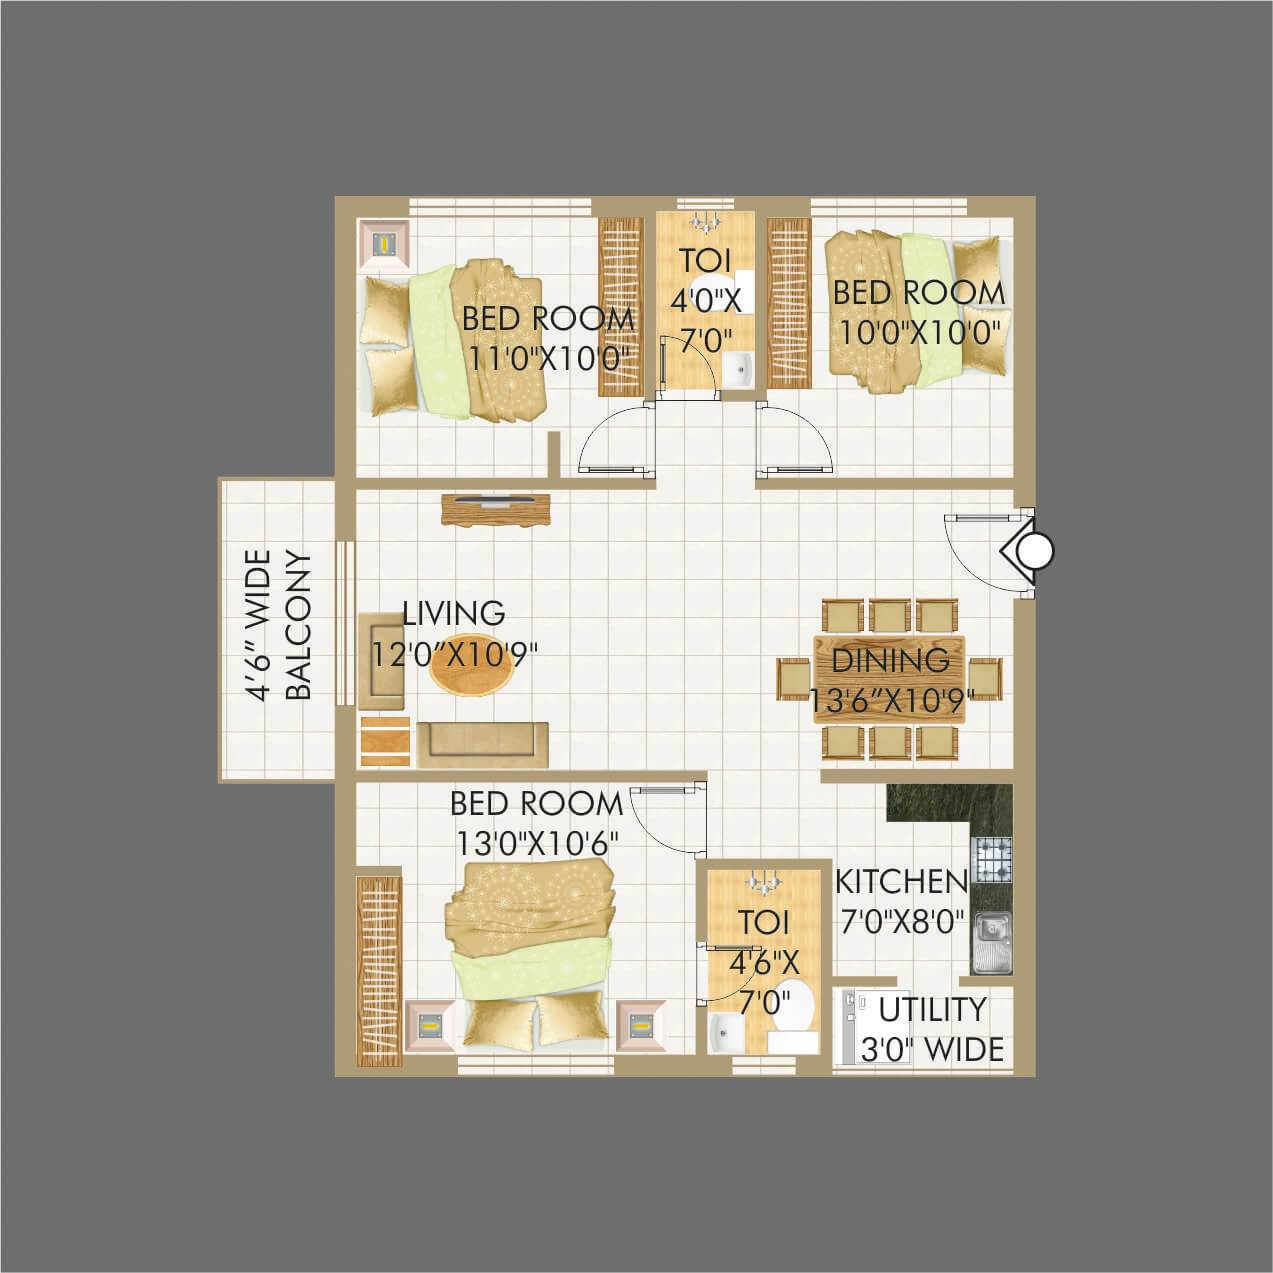 Lakecity floorplan 1251sqft east facing